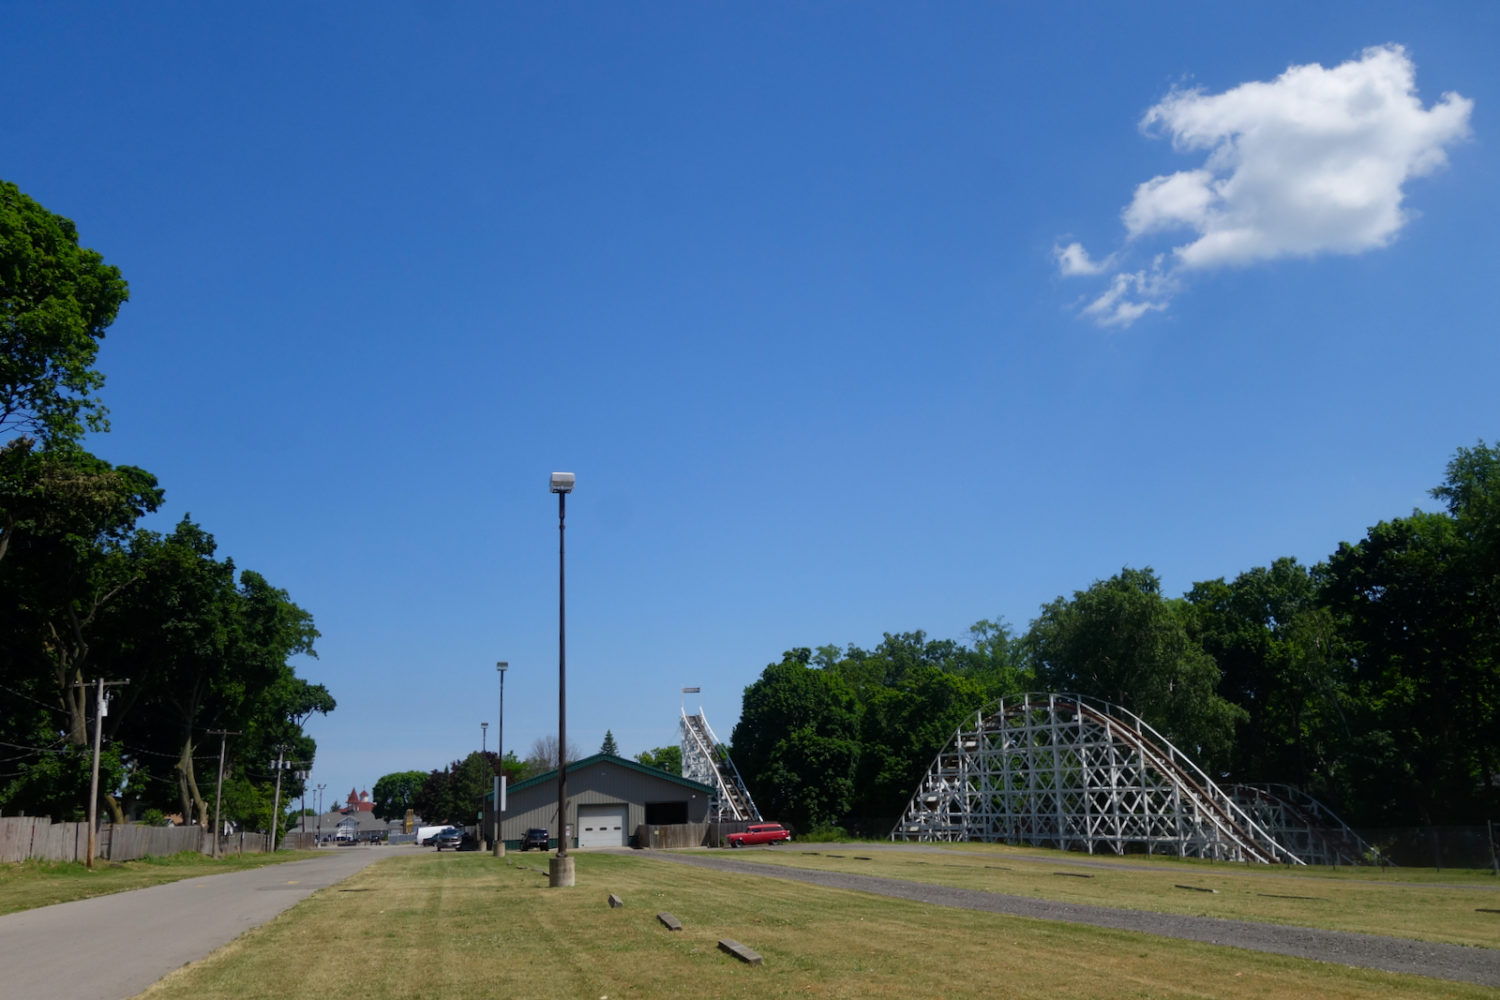 Back side of Sea Breeze Amusement Park in Rochester, New York